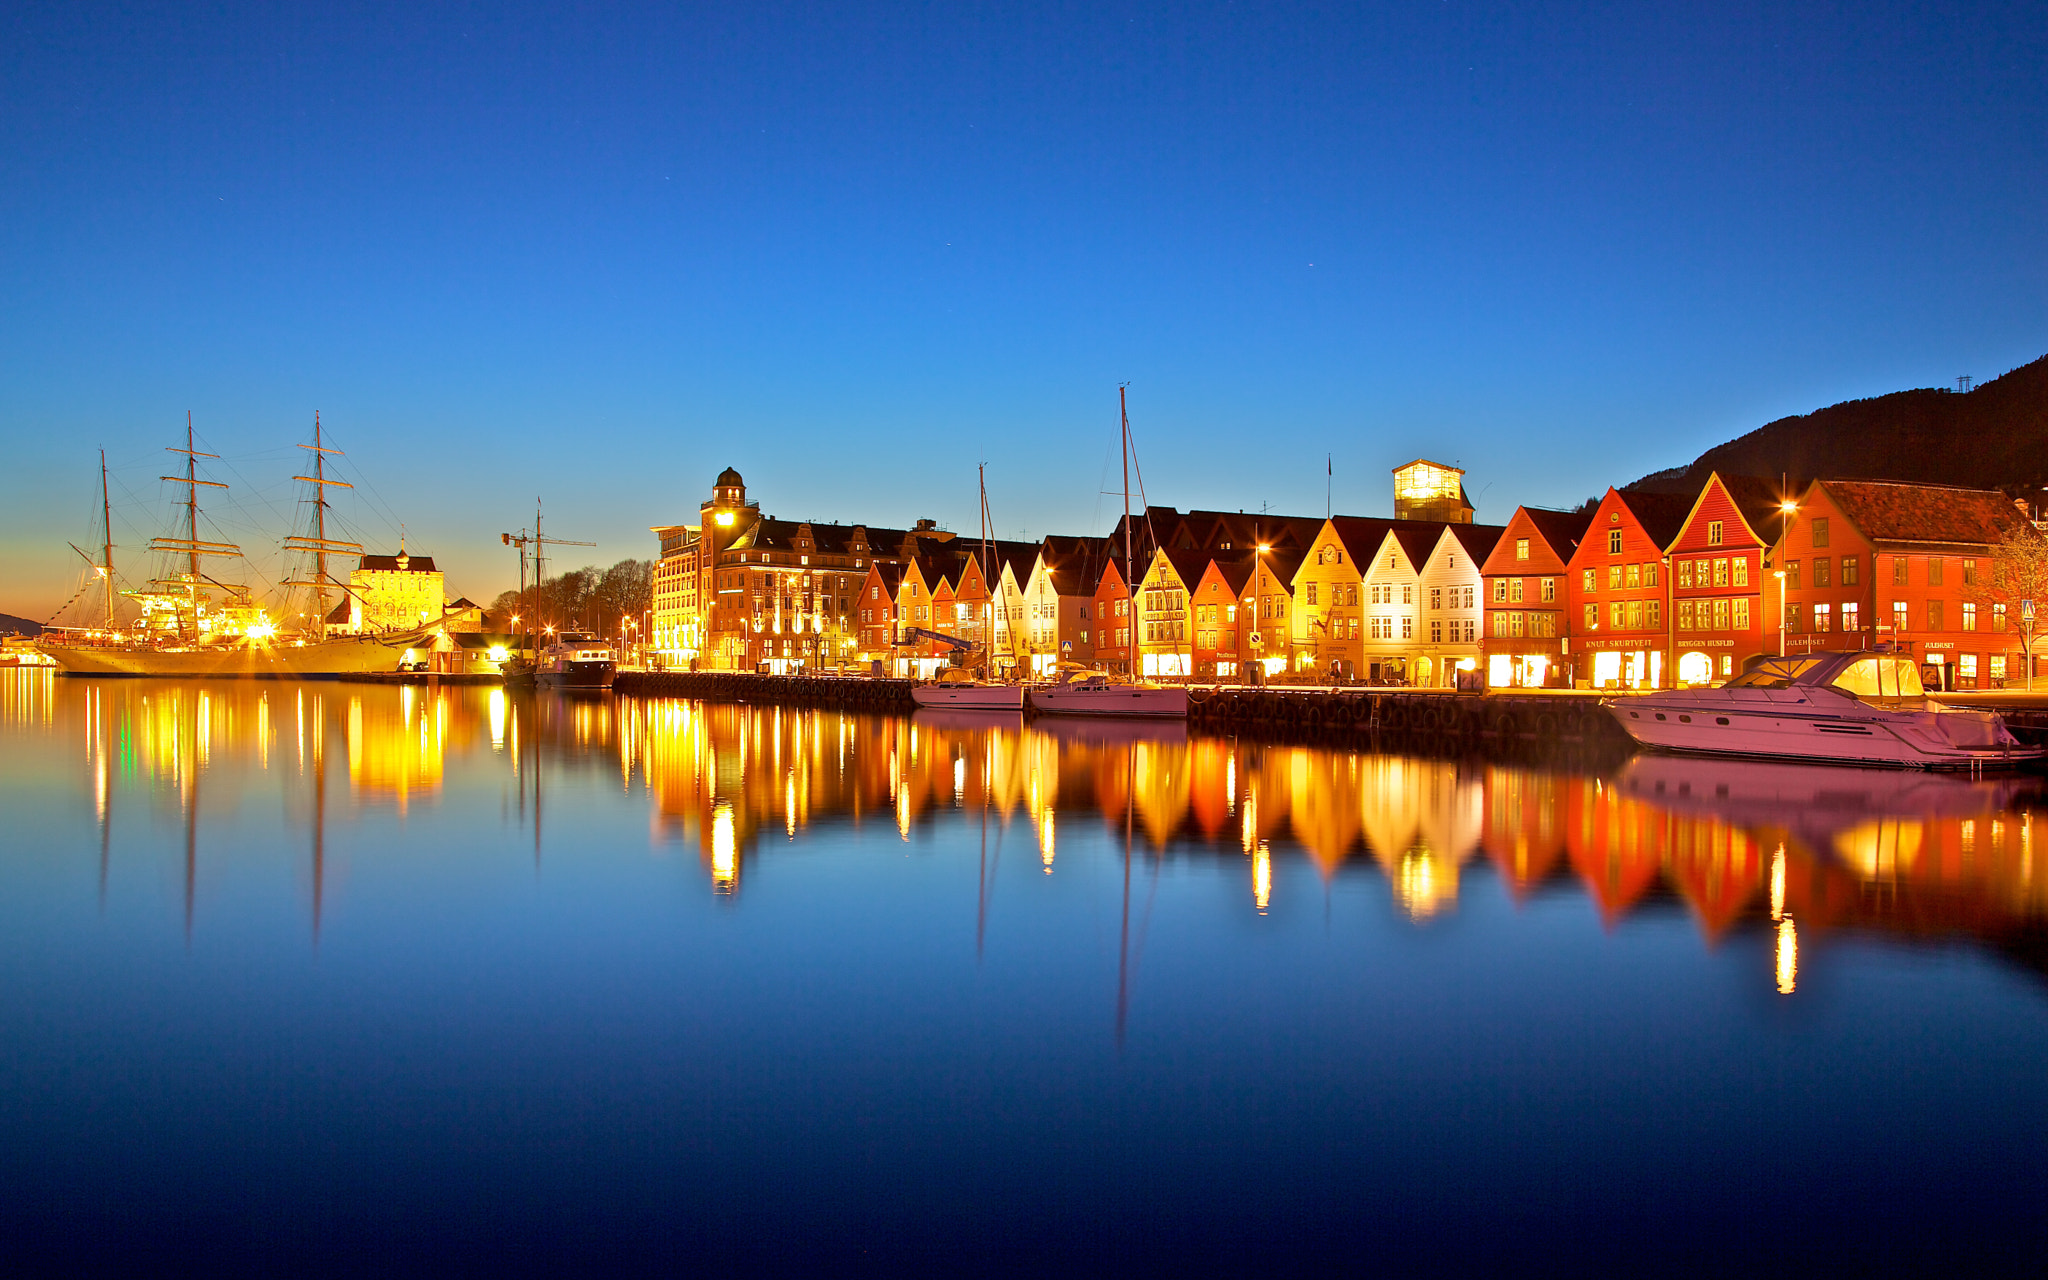 Photograph Blue hour, Bergen, Norway by Europe Trotter on 500px